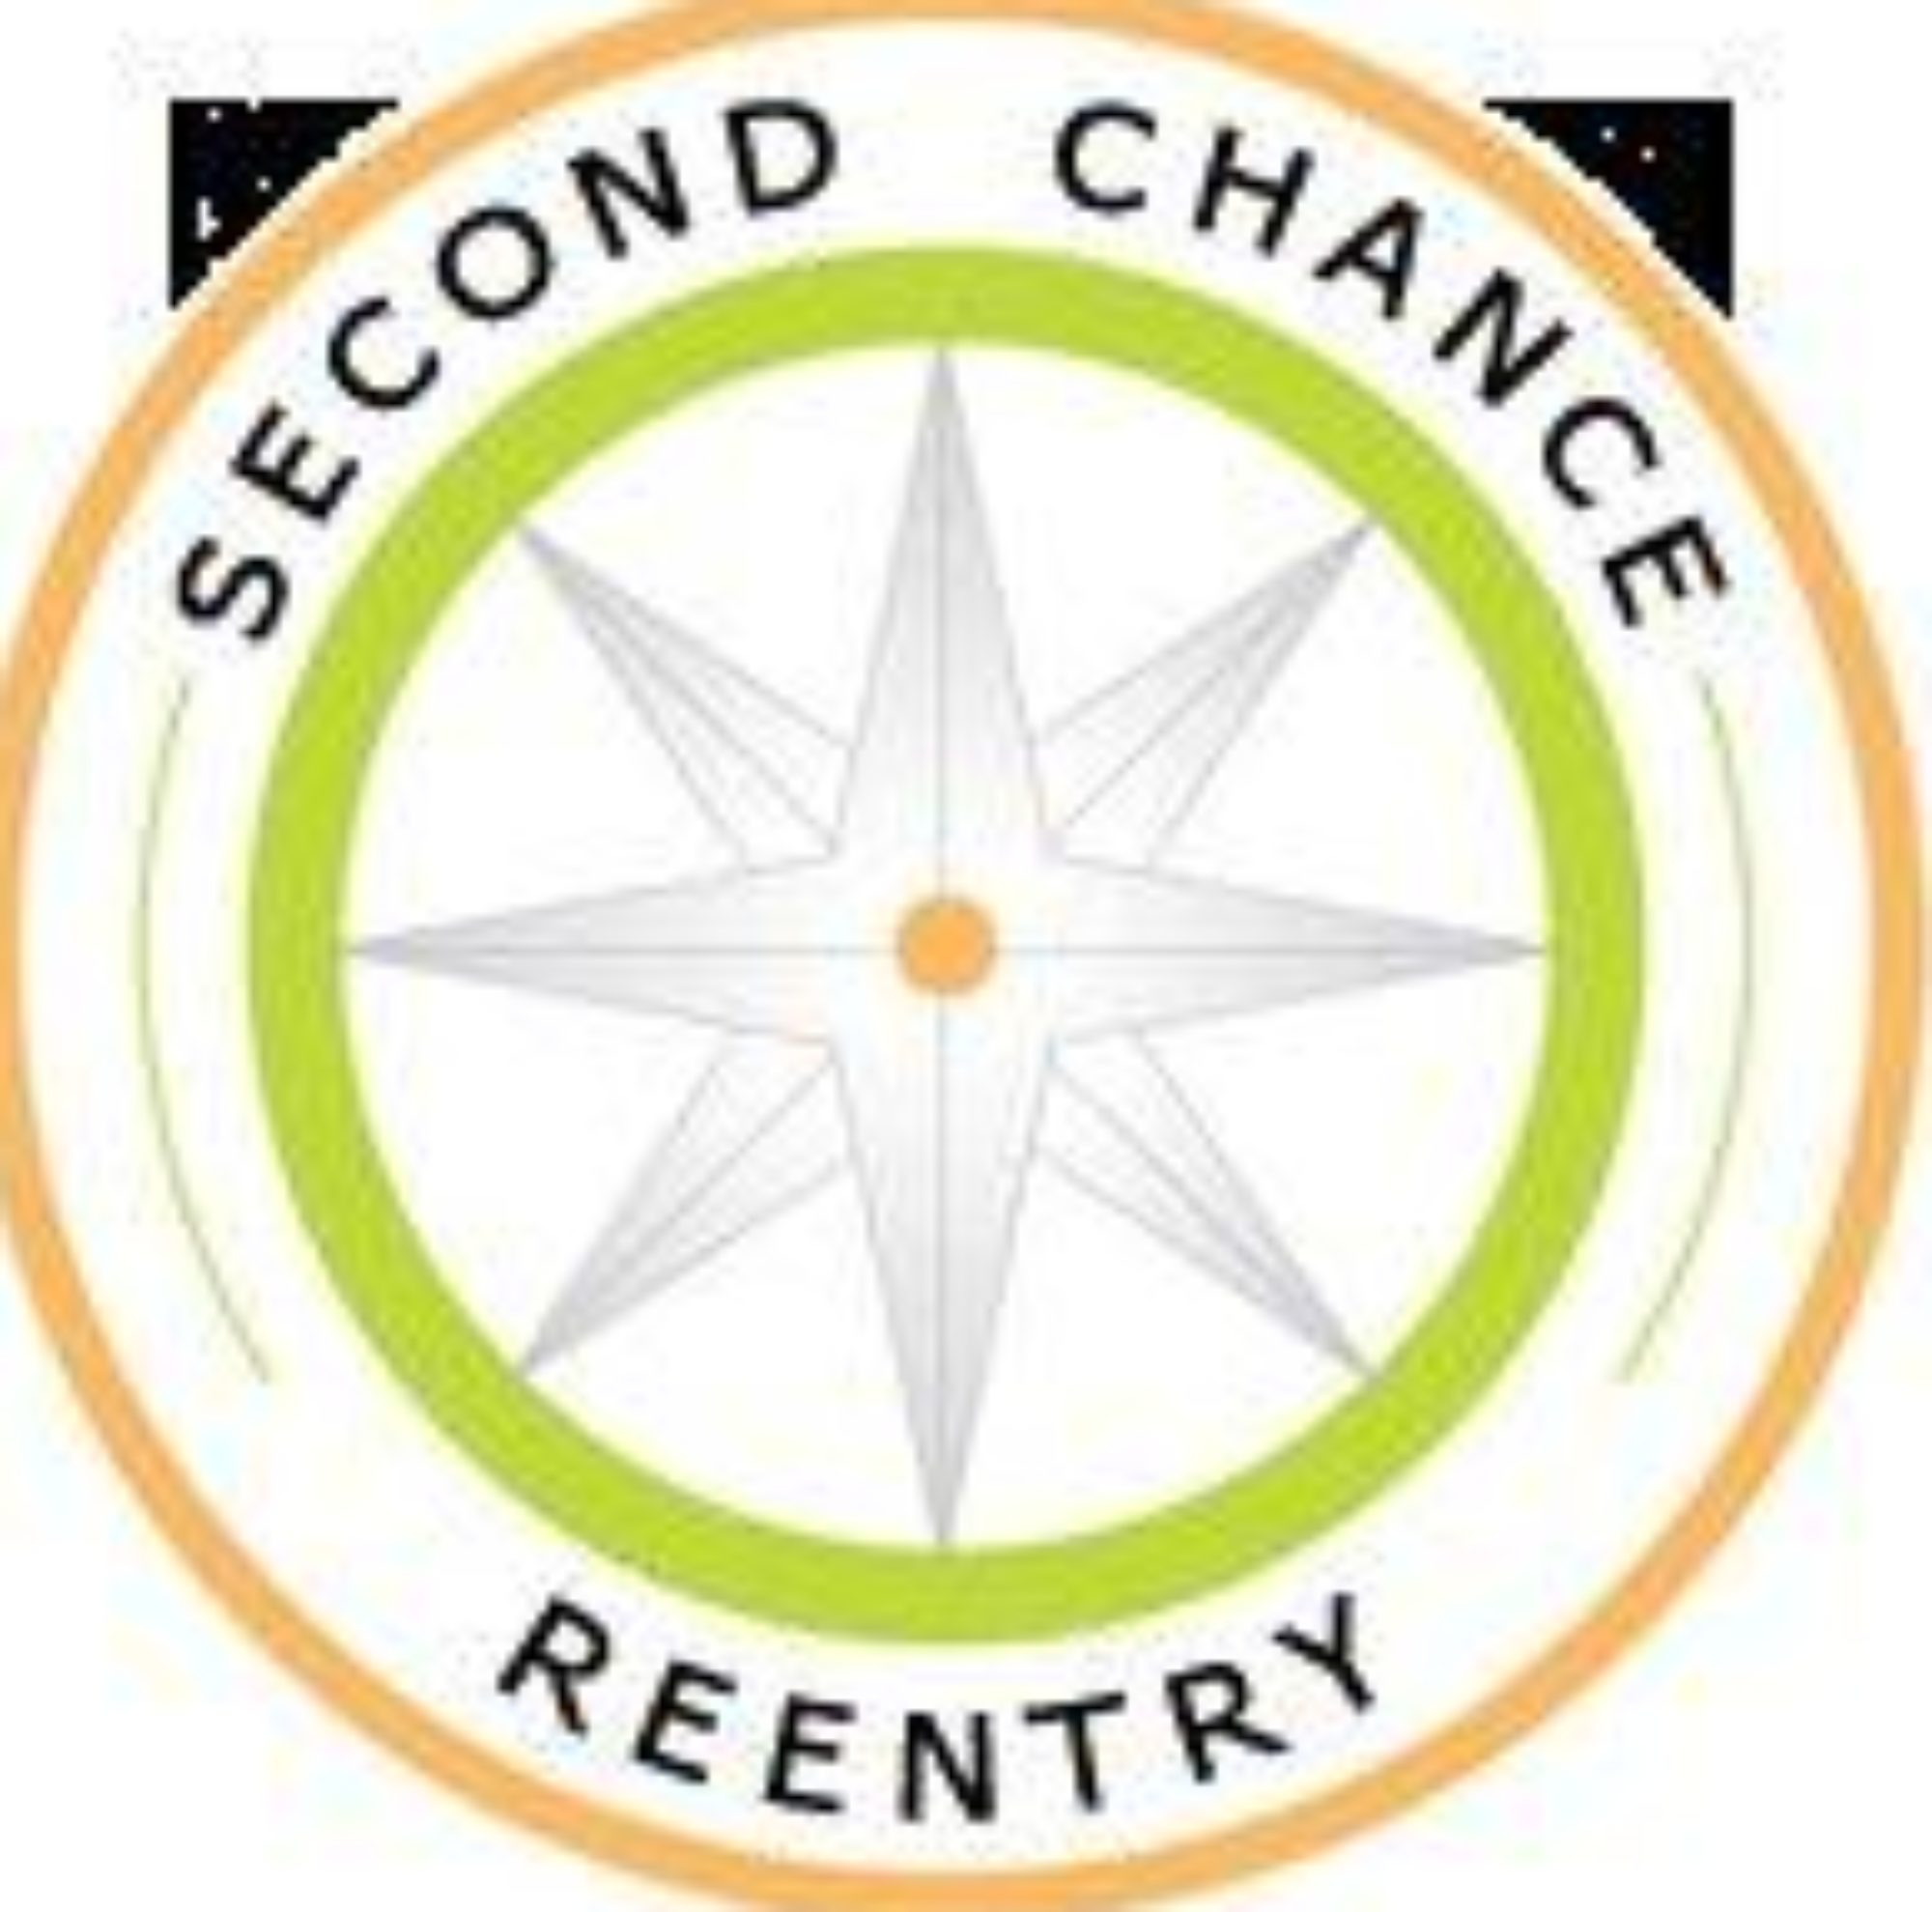 Second Chance Reentry, Inc.